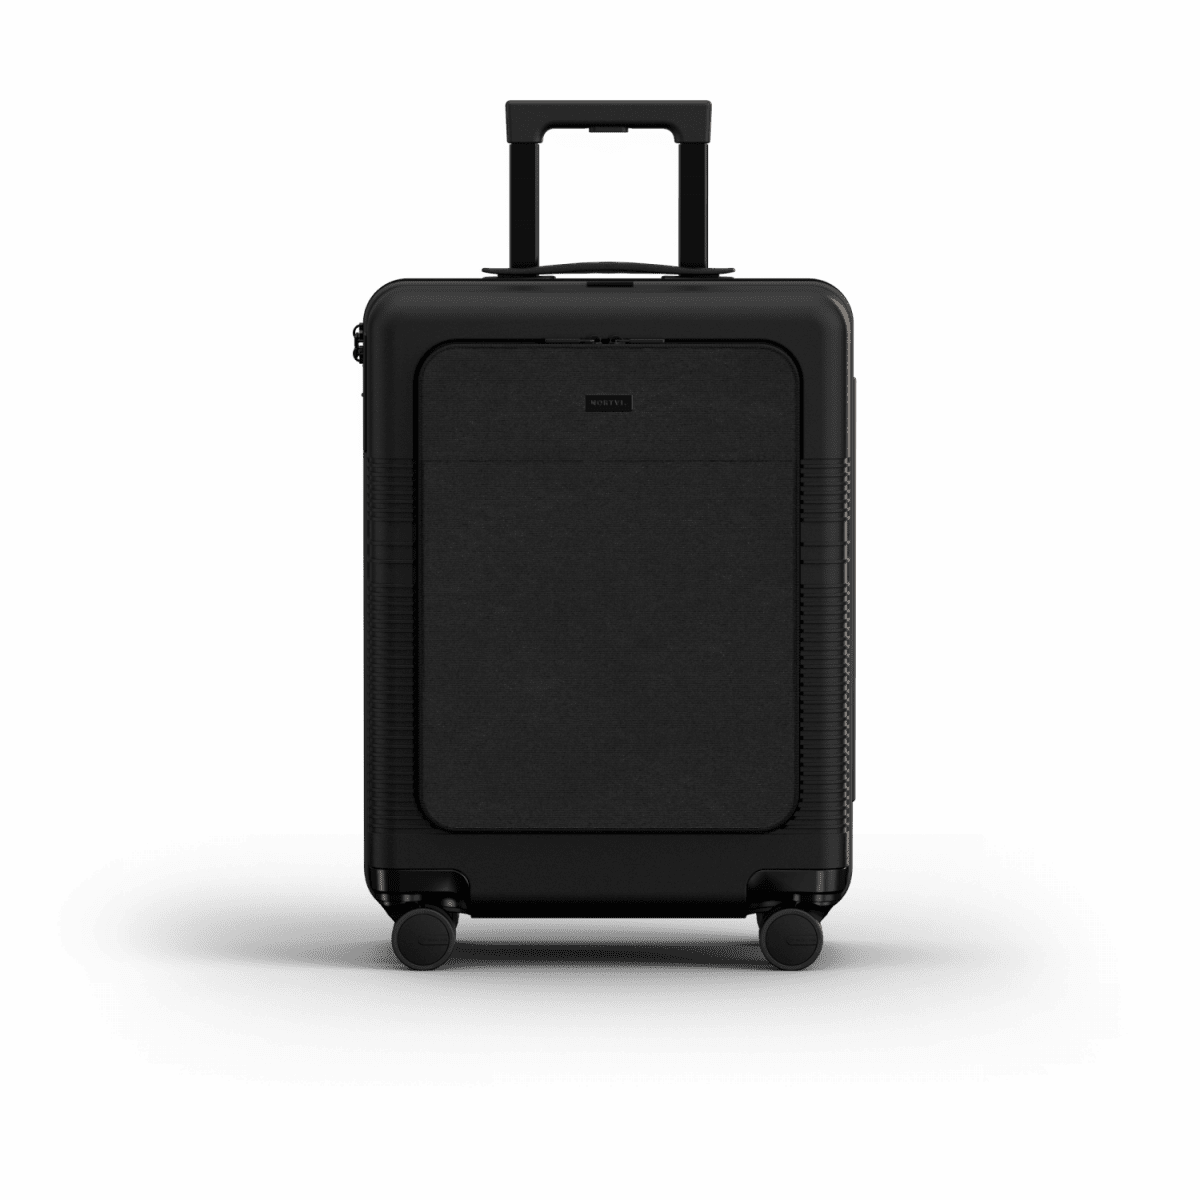 NORTVI sustainable design suitcase Midnight Black met Front Pocket 39 L gemaakt van duurzaam materiaal.